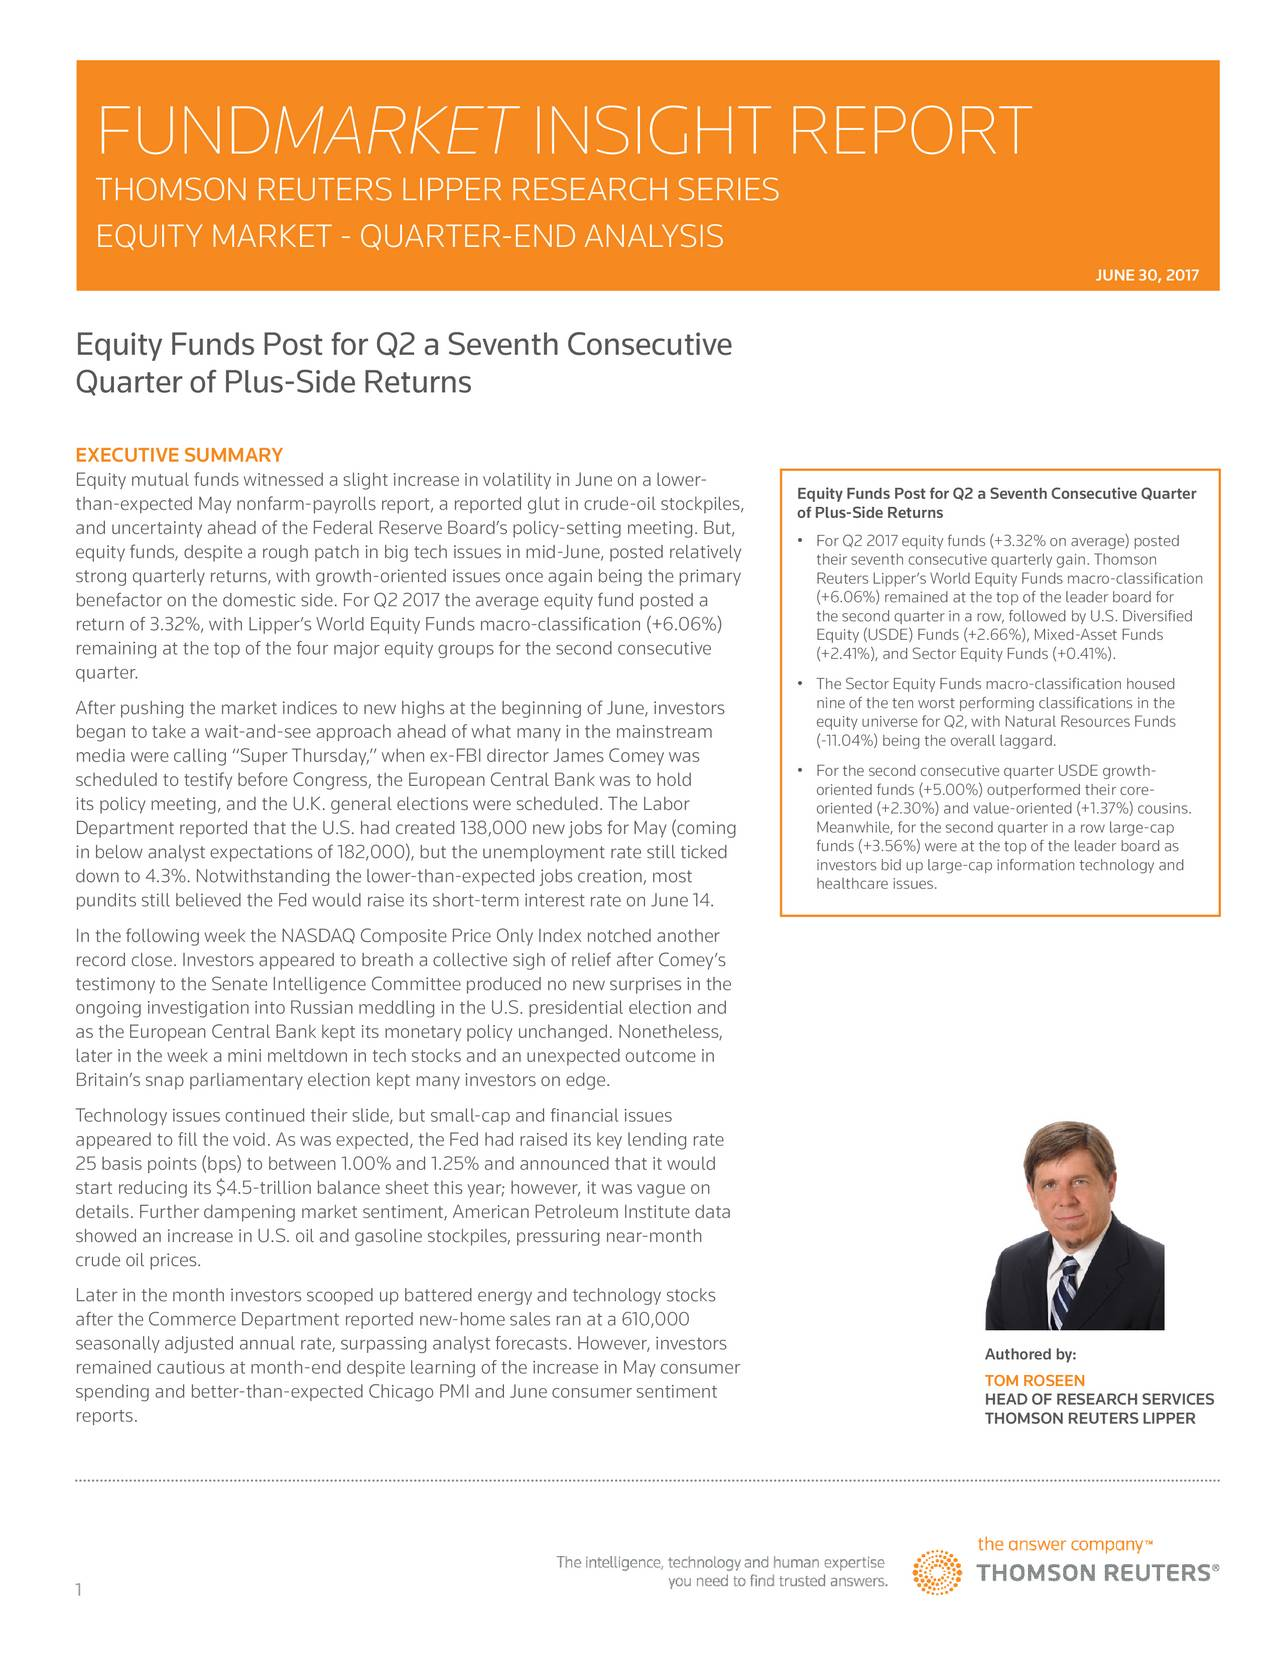 Equity Funds Post For Q2 A Seventh Consecutive Quarter Of ...